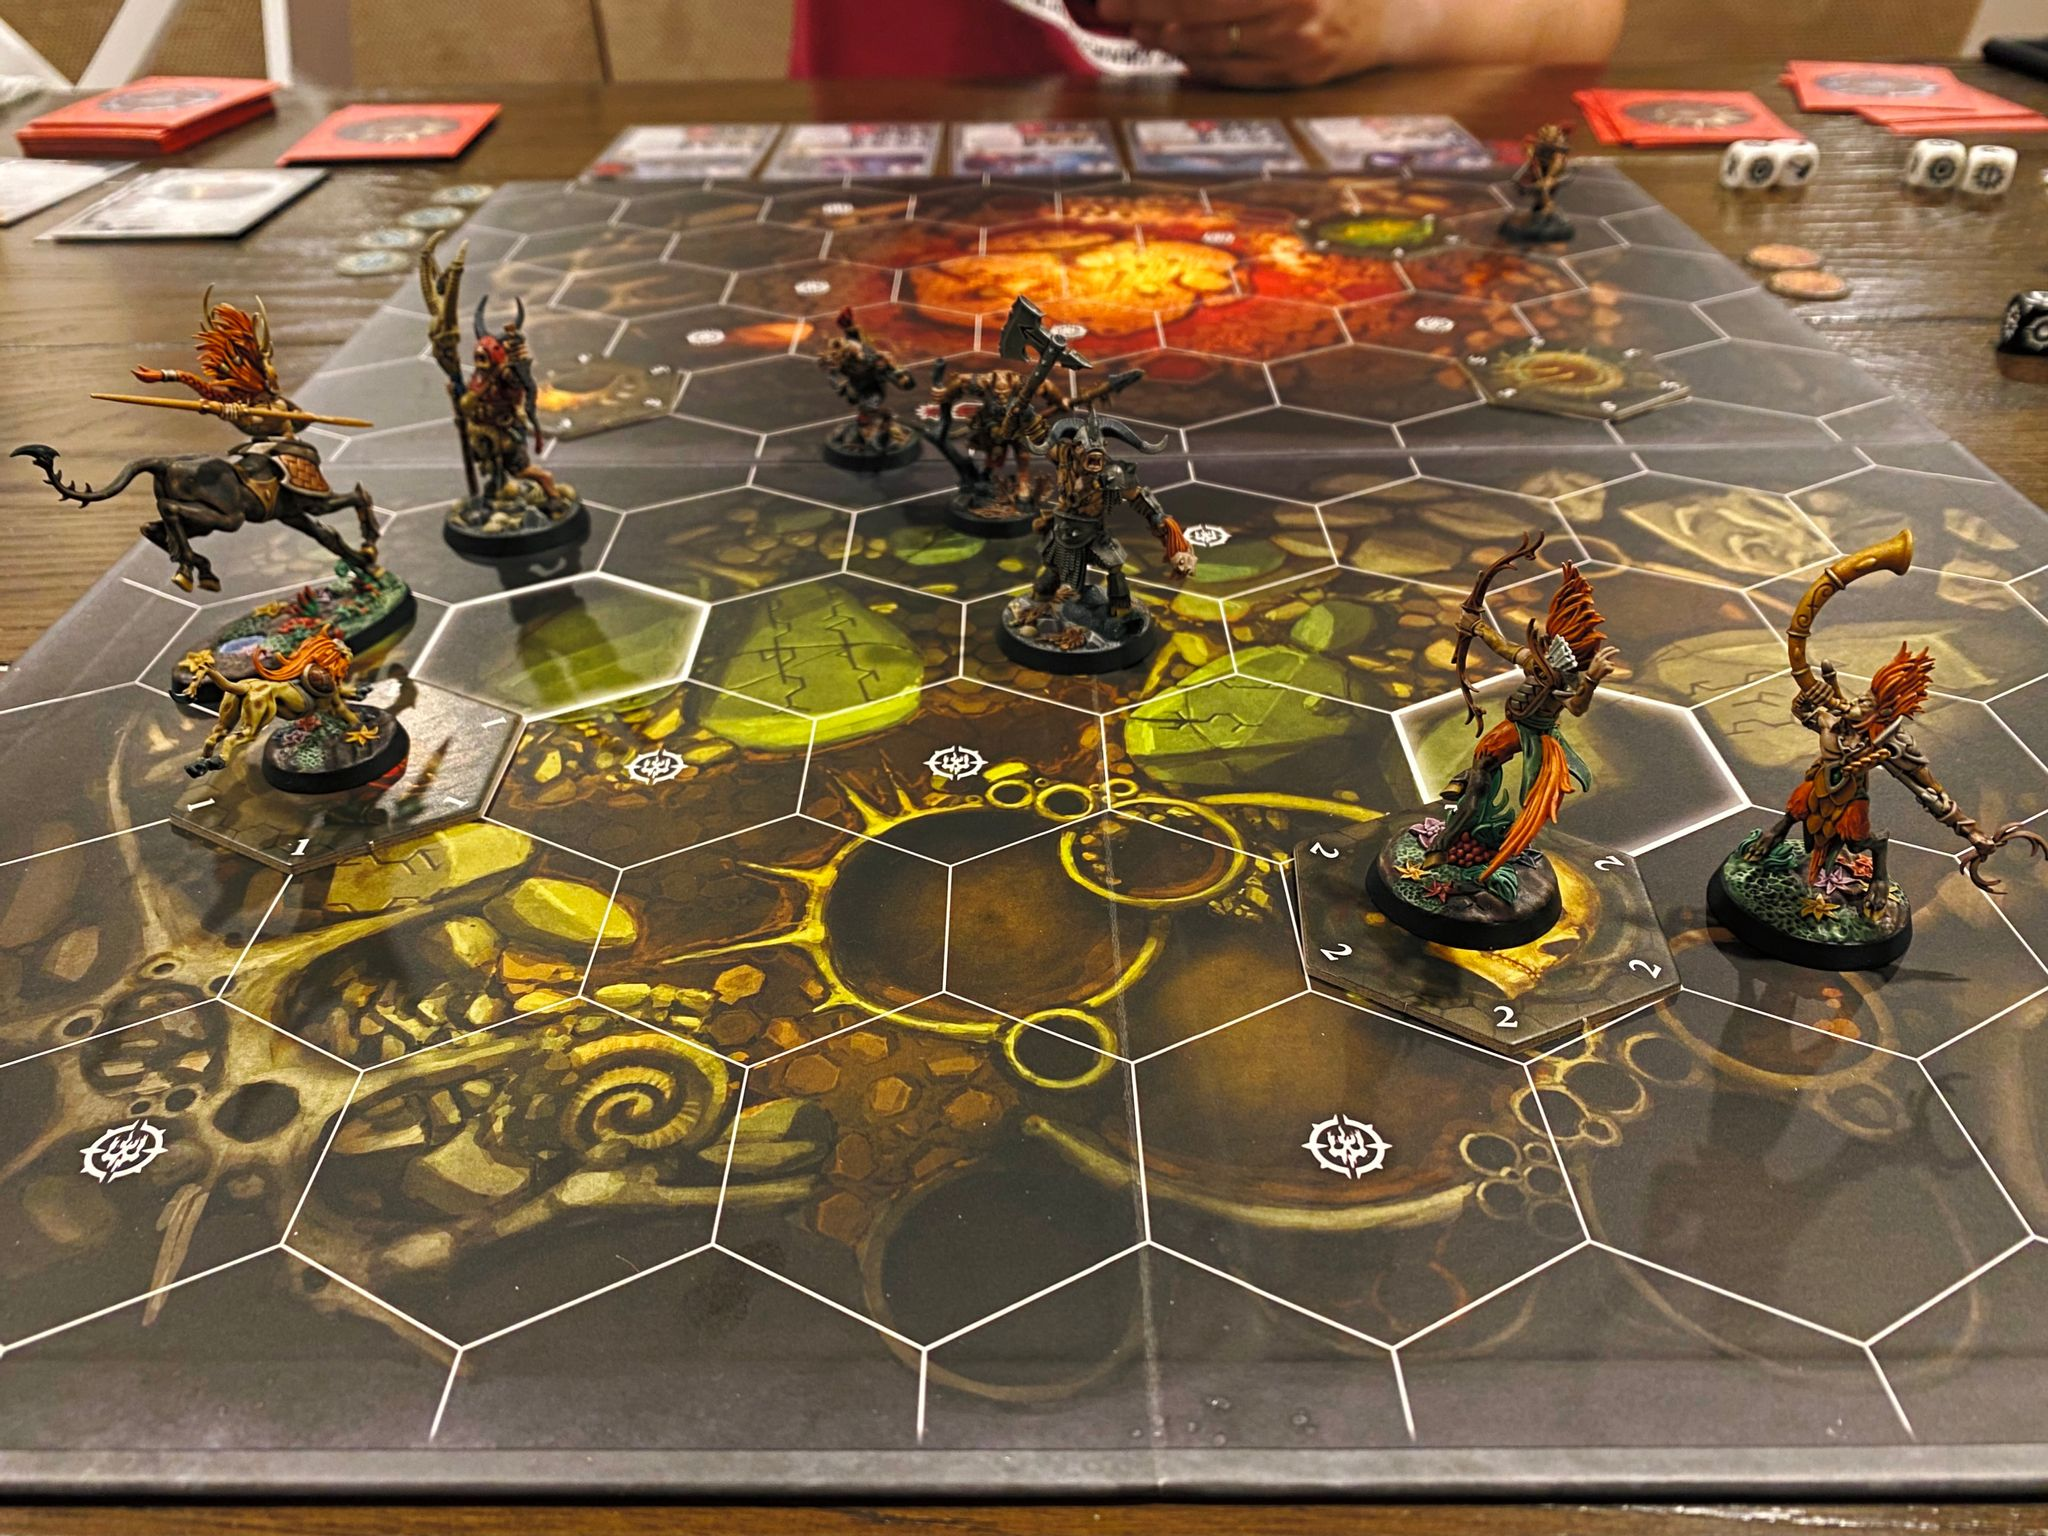 A photo of the game board of Warhammer Underworlds: Beastgrave. It has a bunch of hexagonal tiles on it, and the two opposing forces are elves that have red hair and backwards-facing goat legs, and a bunch of rampaging beastmen.